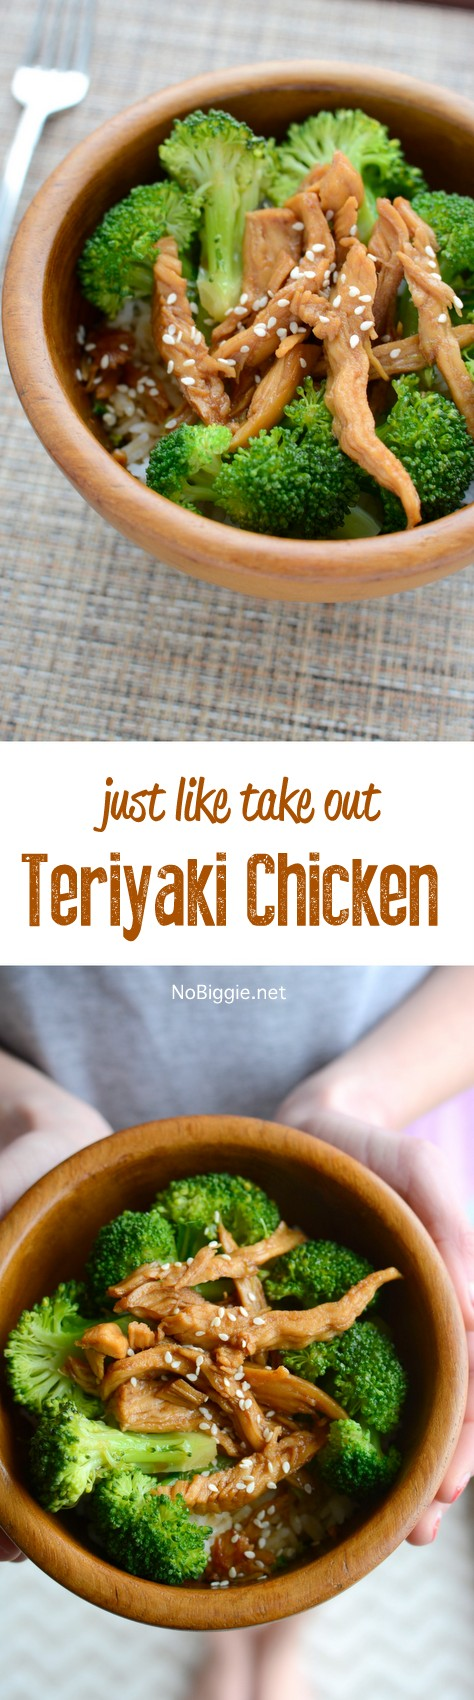 http://www.nobiggie.net/wp-content/uploads/2016/05/Teriyaki-Chicken-So-good-it-tastes-just-like-take-out.jpg